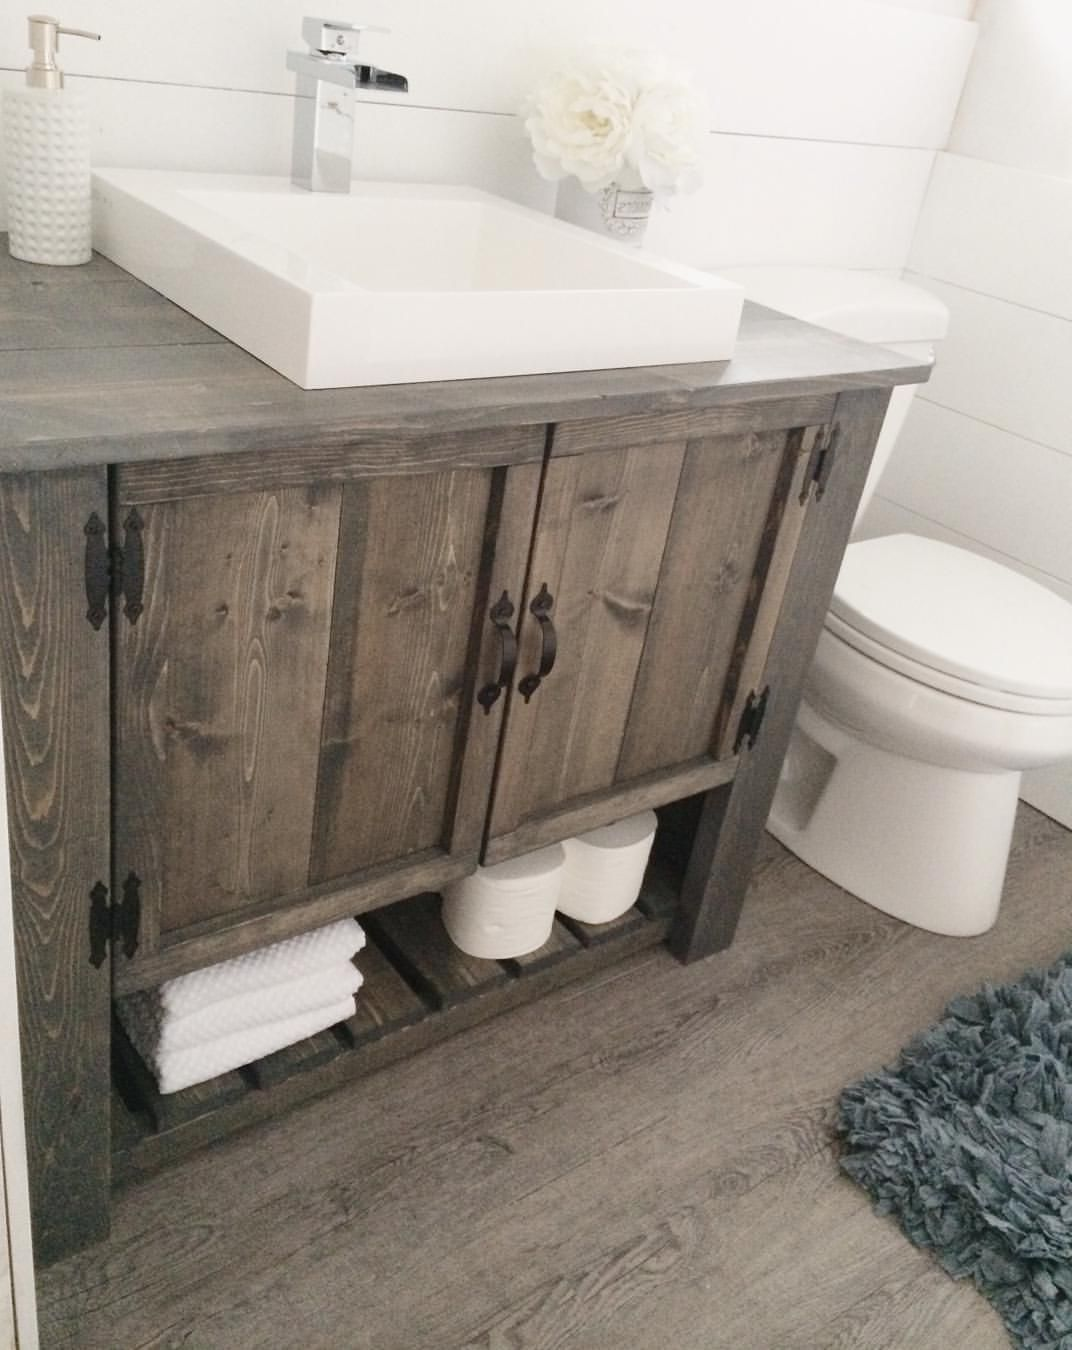 20 Gorgeous Bathroom Vanity Decor Inspiration You Should Try At Home Farmhouse Rustic Bathroom Vanity Remodel Bathroom Vanity Decor Rustic Bathroom Vanities